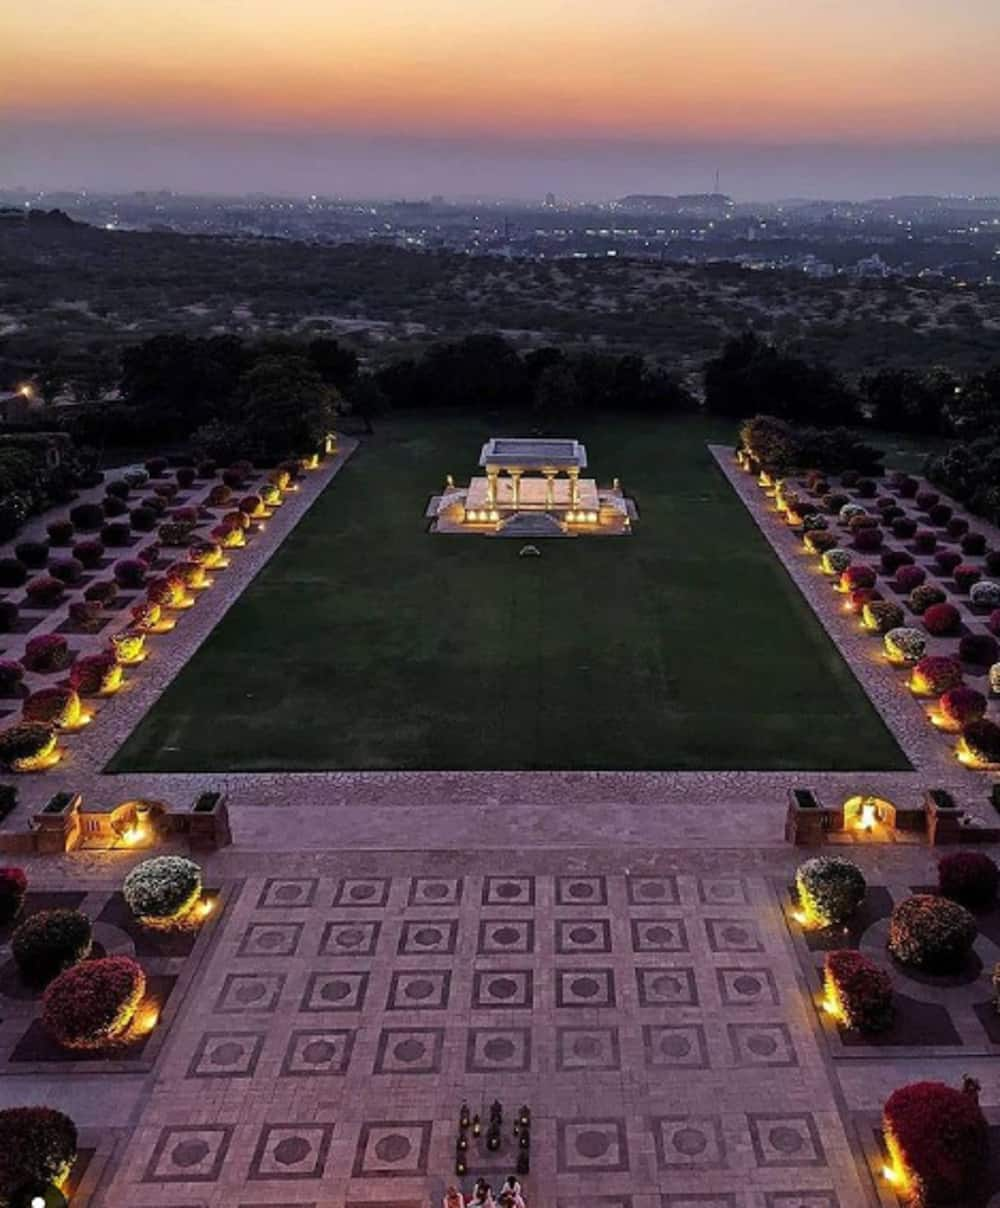 How much should I spend on a wedding venue?